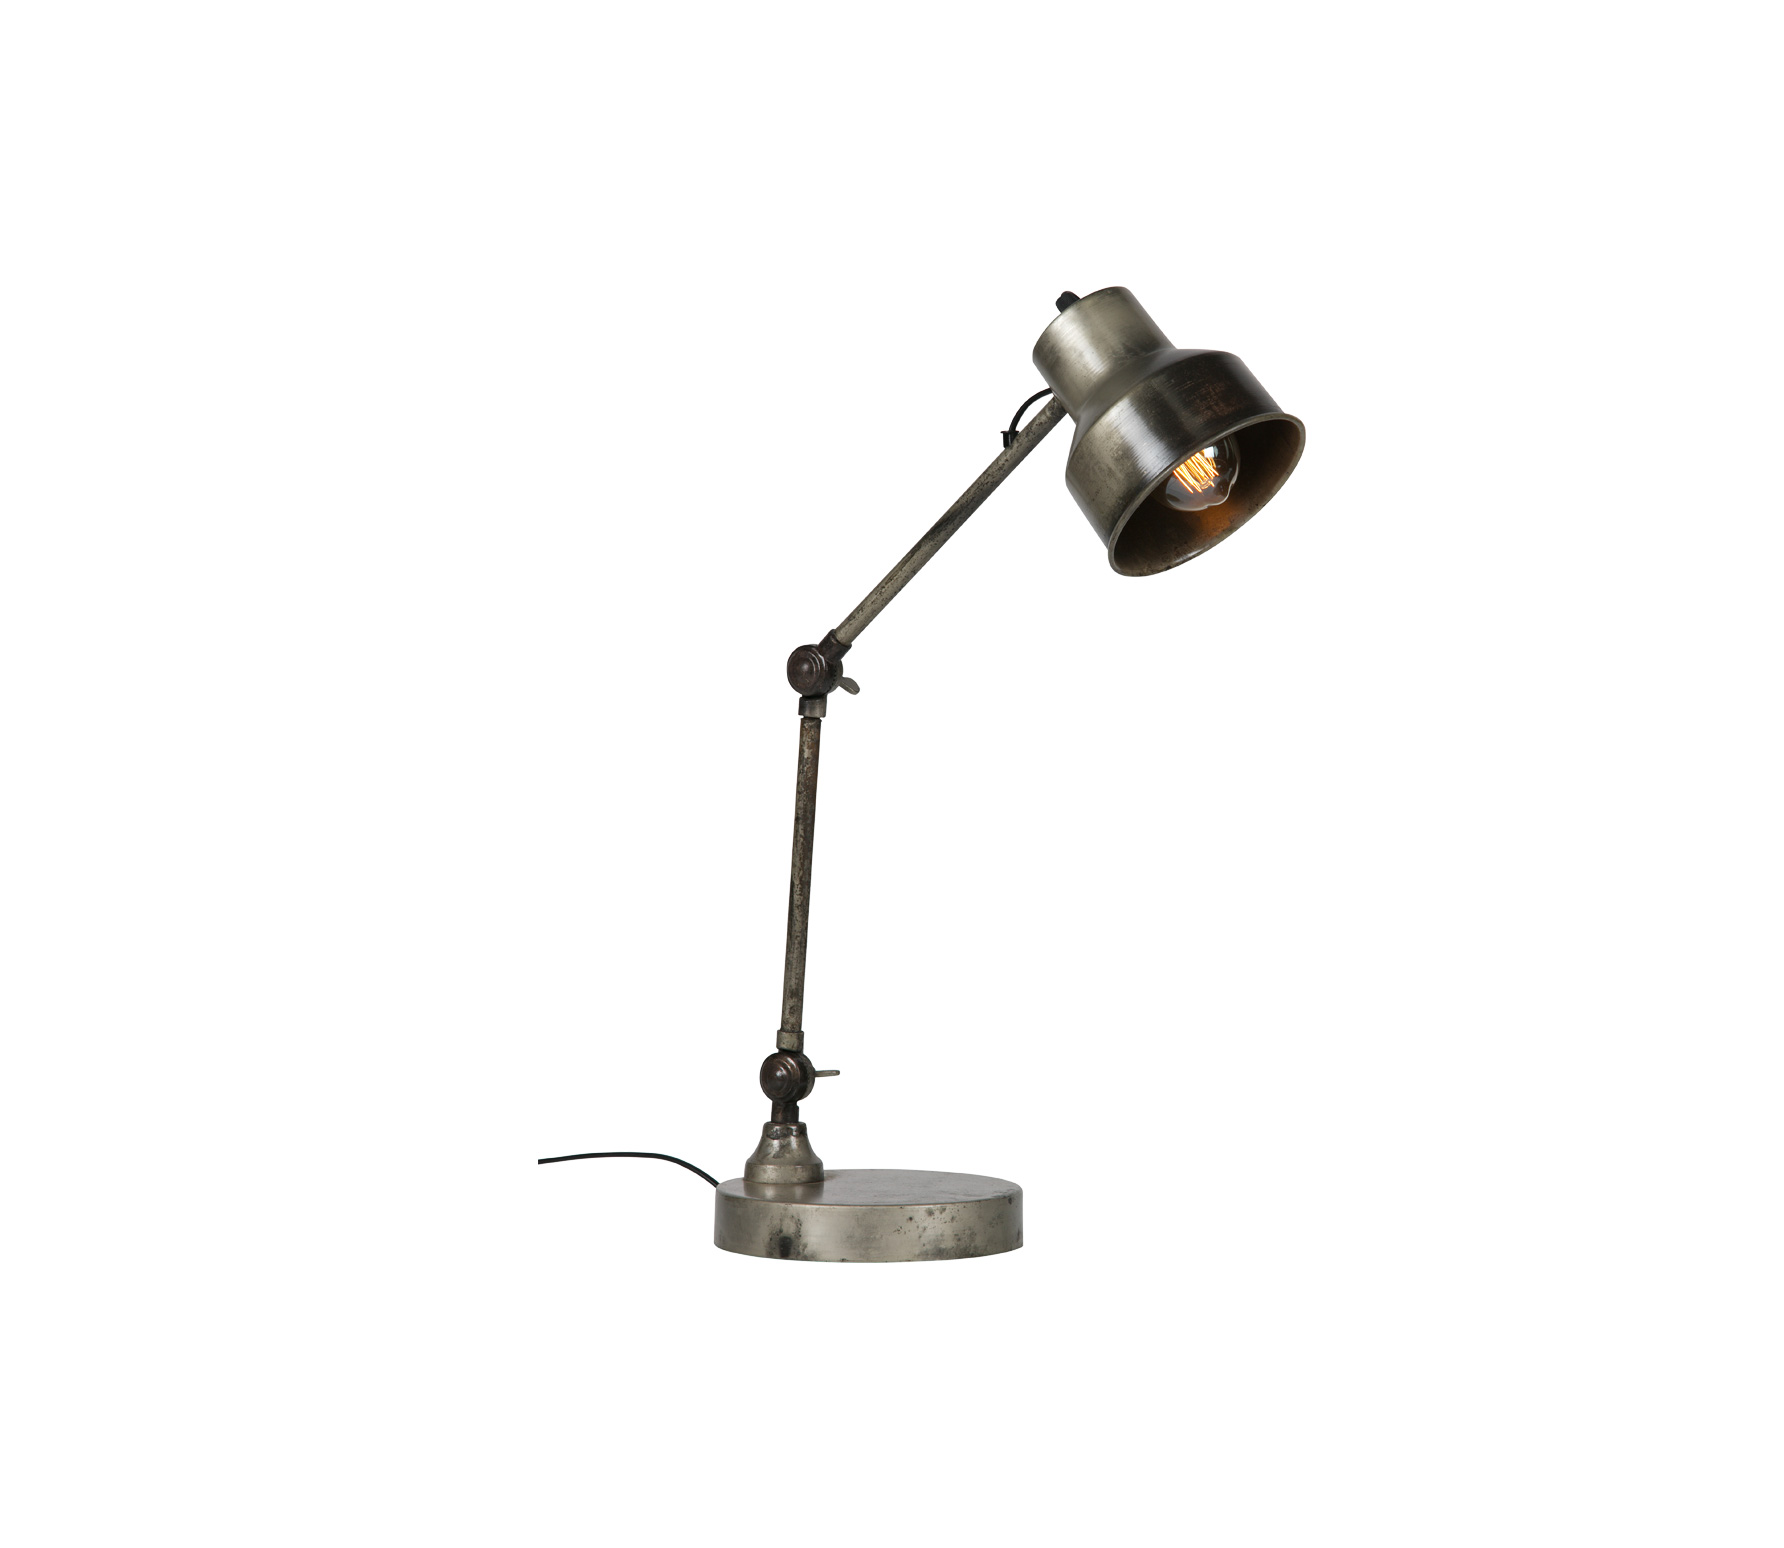 WOOOD Exclusive Hector staande lamp antique zilver metaal